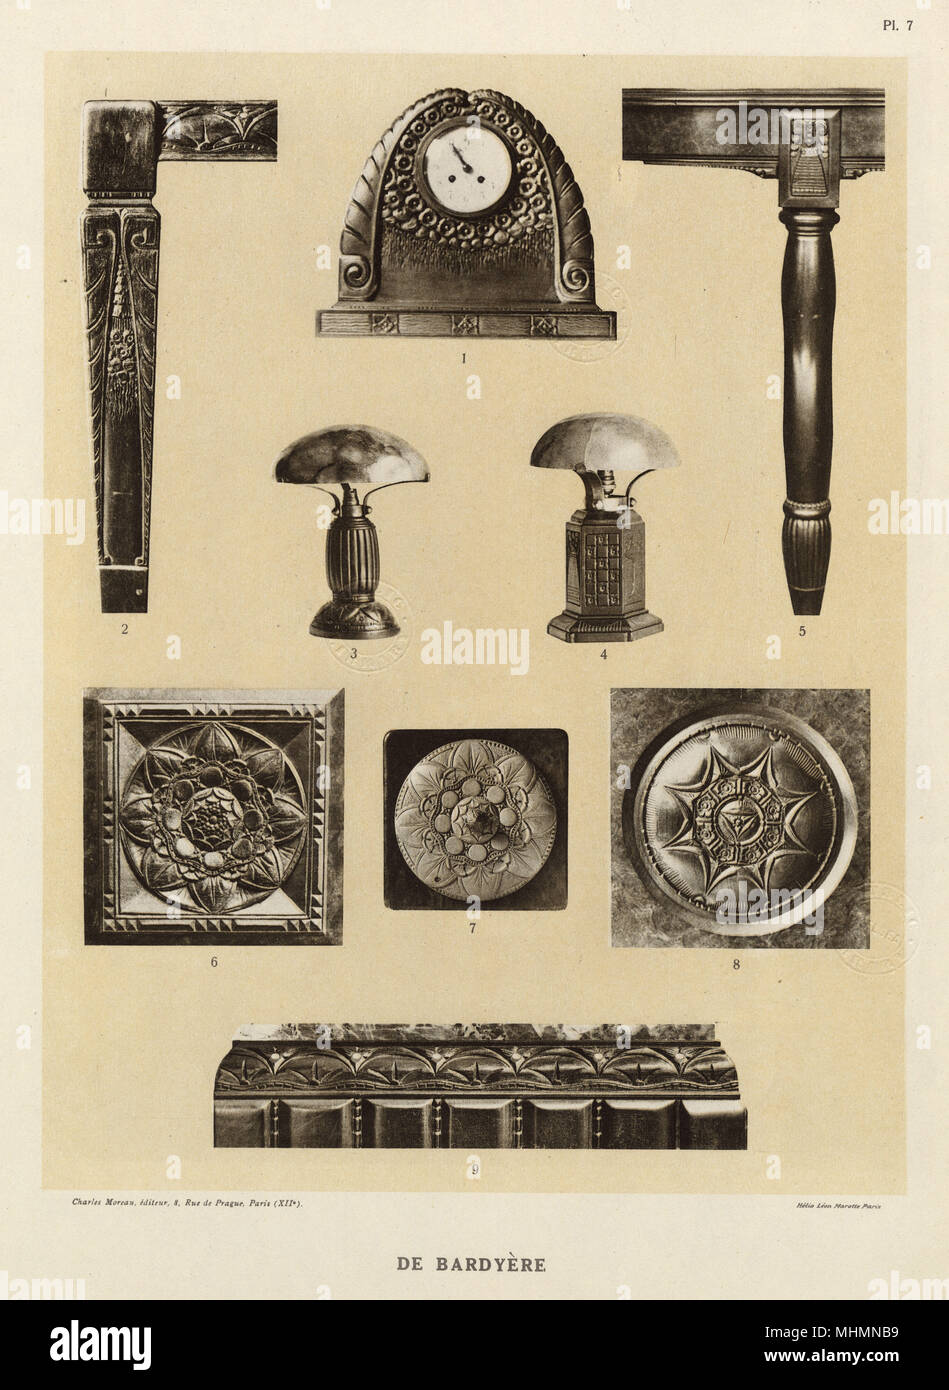 Bas-relief carvings by Georges de Bardyere (1883-1941) including a clock surround, a table leg, two lamps and a variety of artistic details in decorative style.     Date: circa 1910s Stock Photo